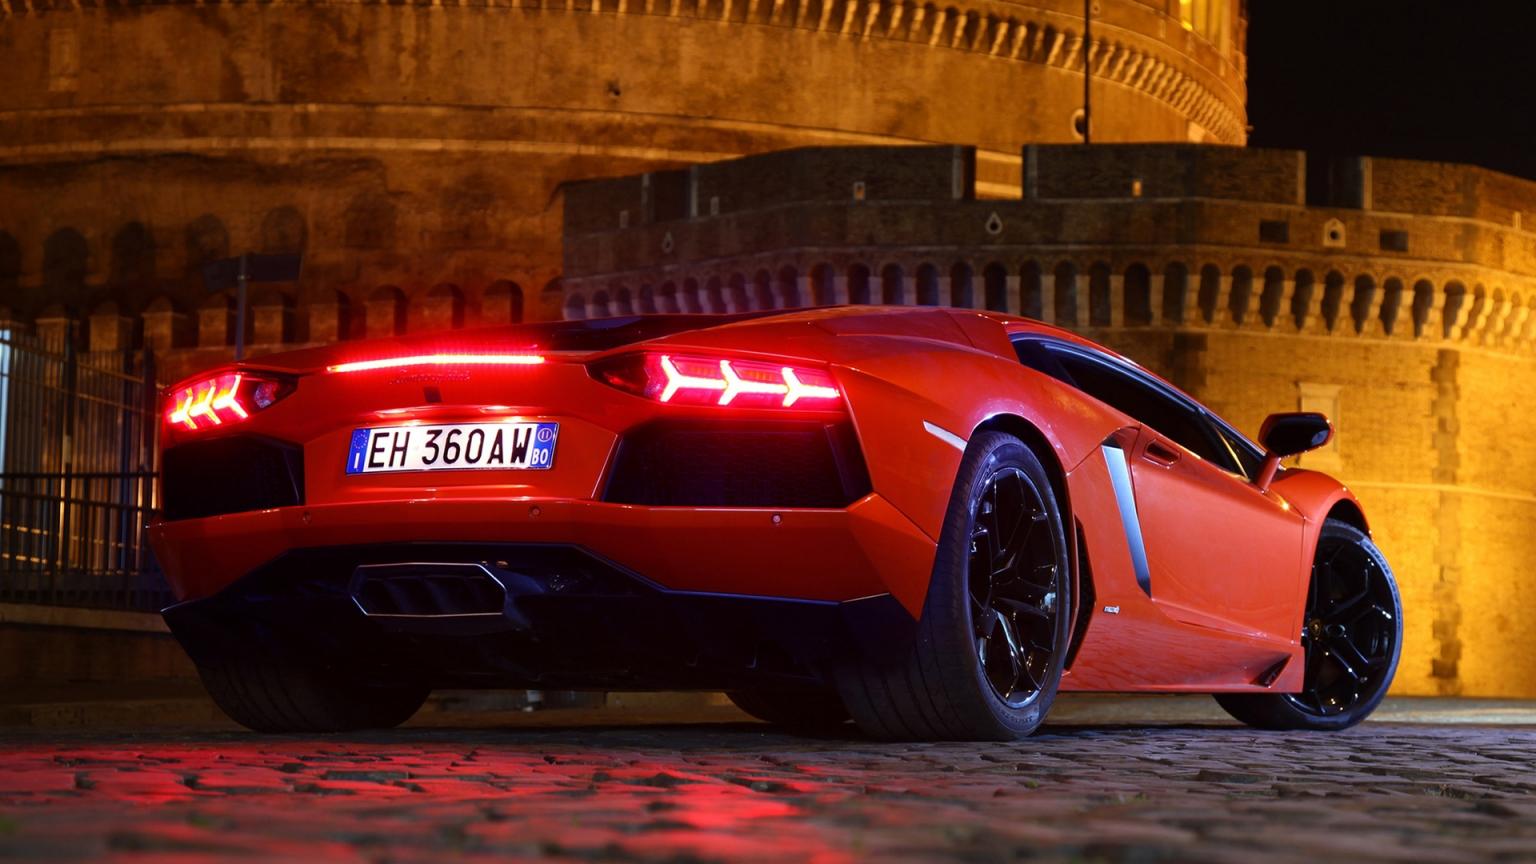 Red Lamborghini Aventador for 1536 x 864 HDTV resolution